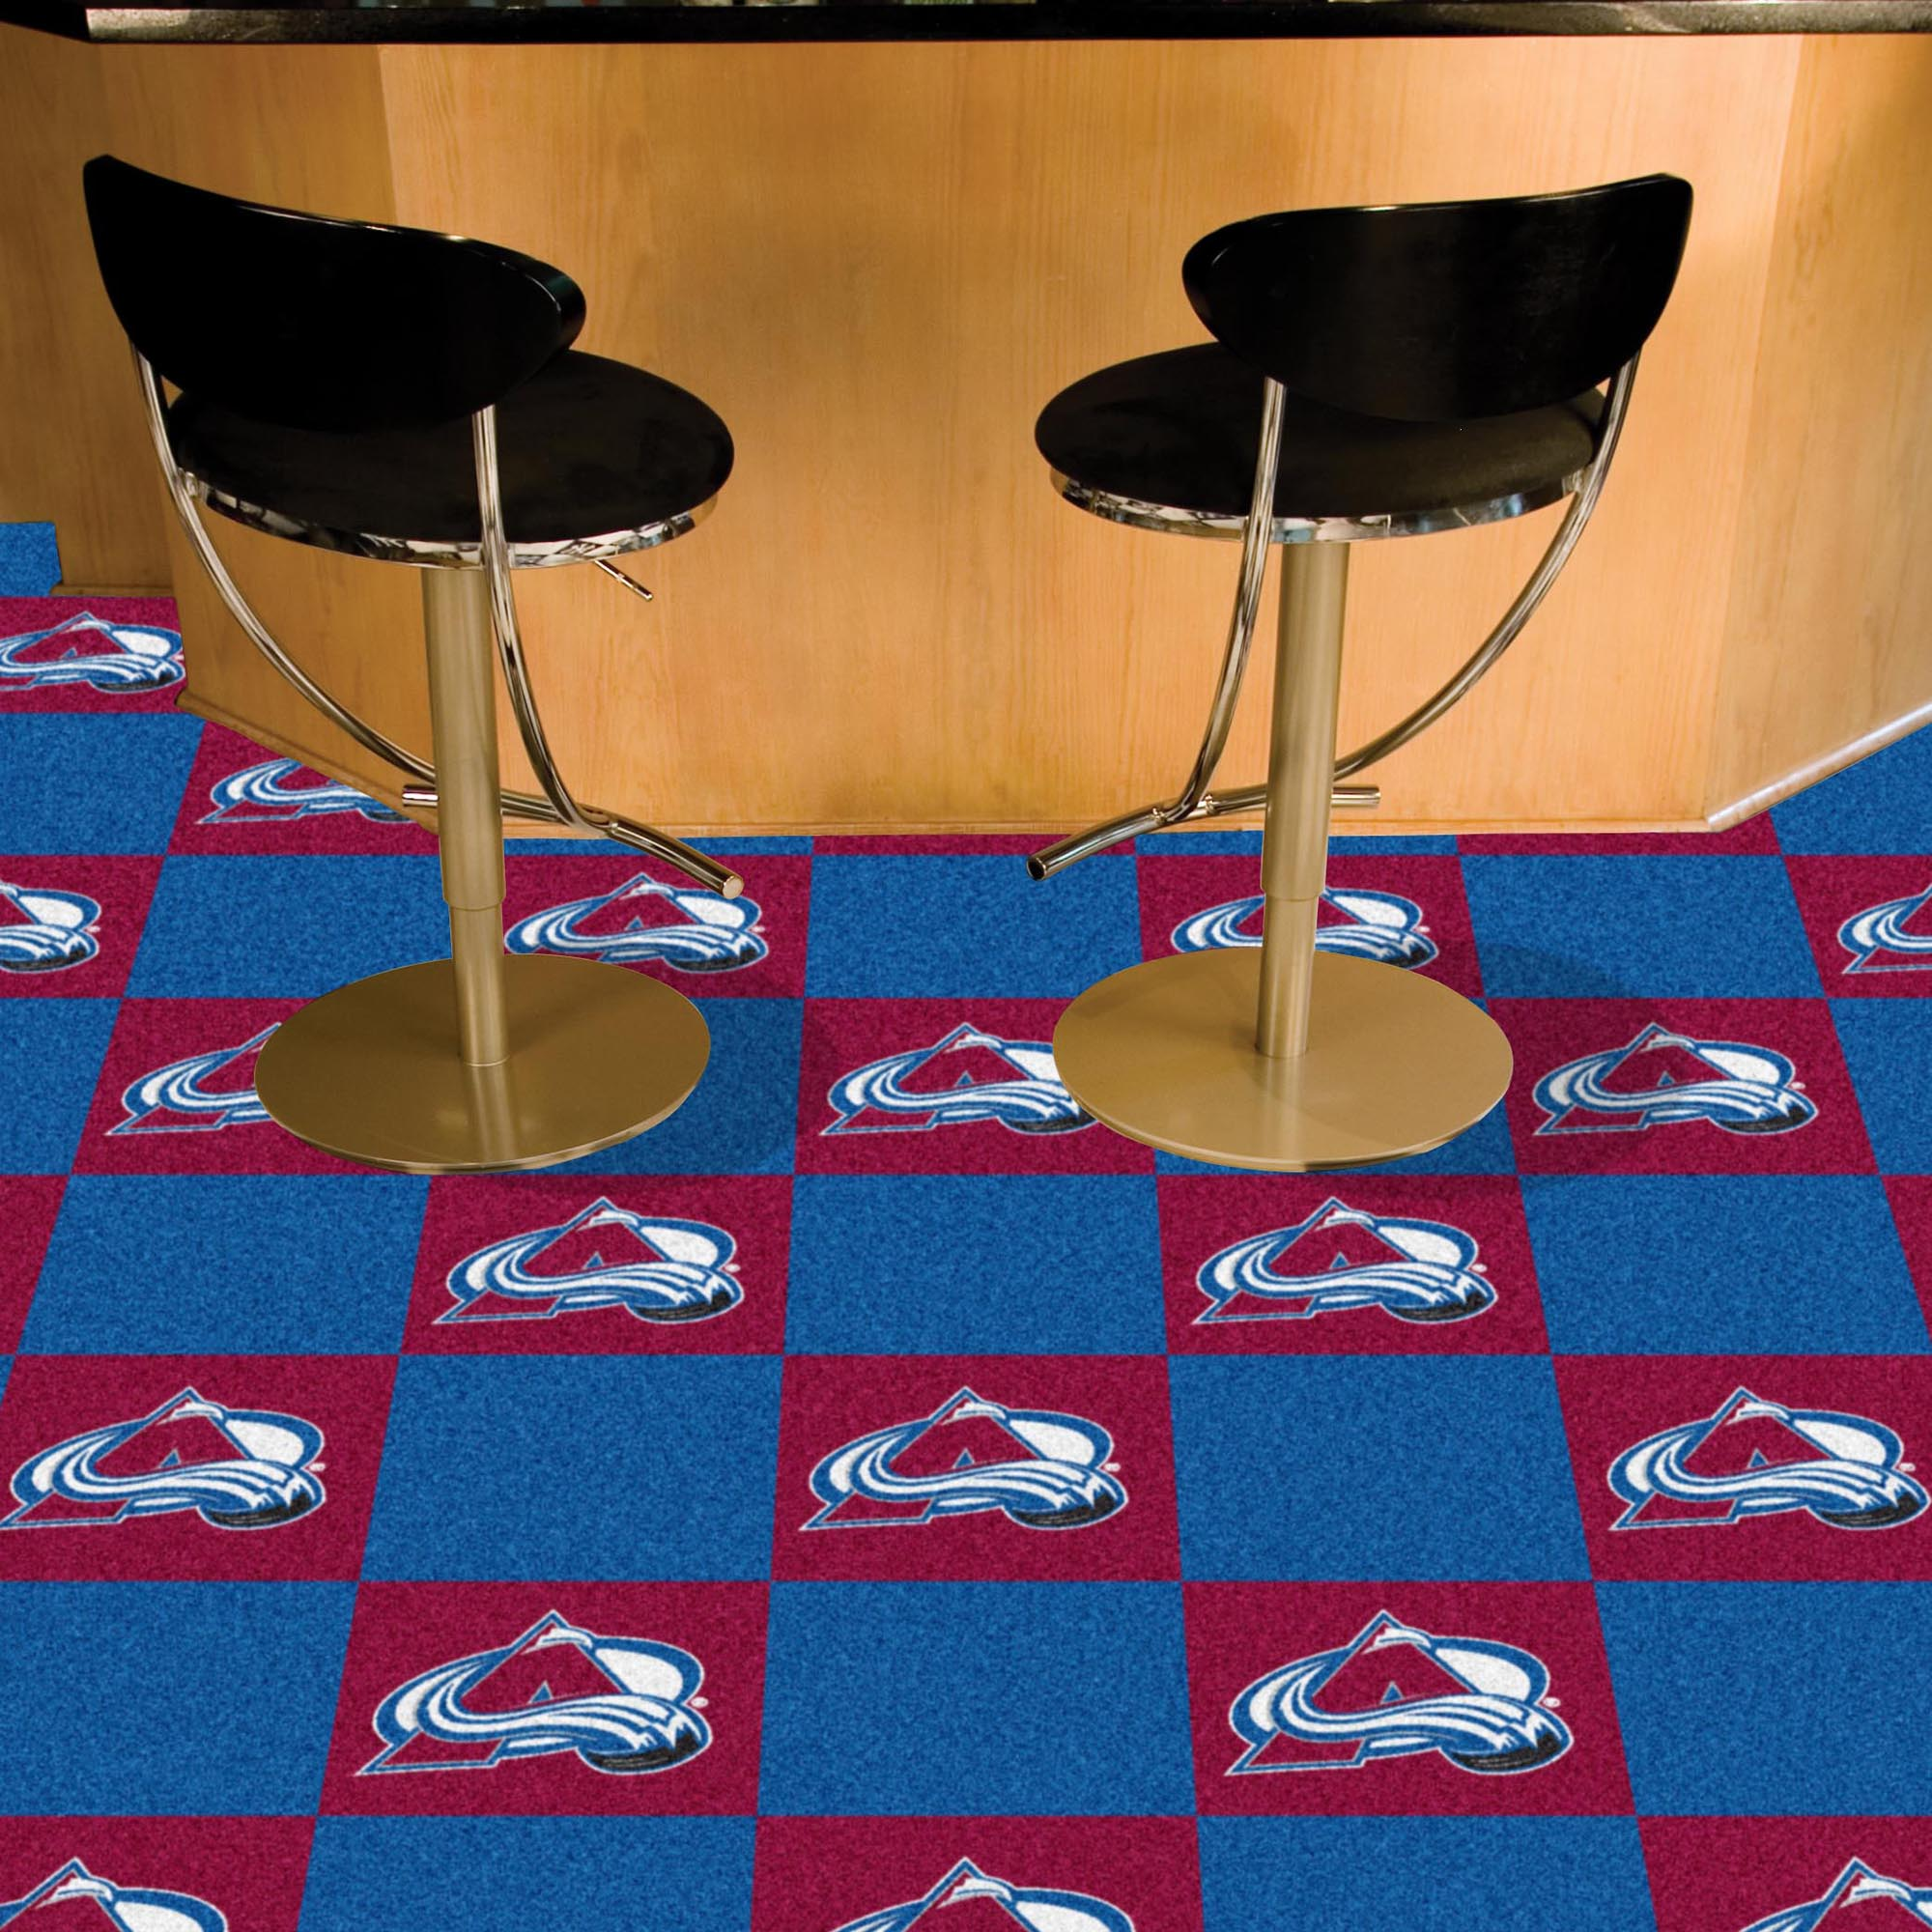 Colorado Avalanche Carpet Tiles 18x18 in.